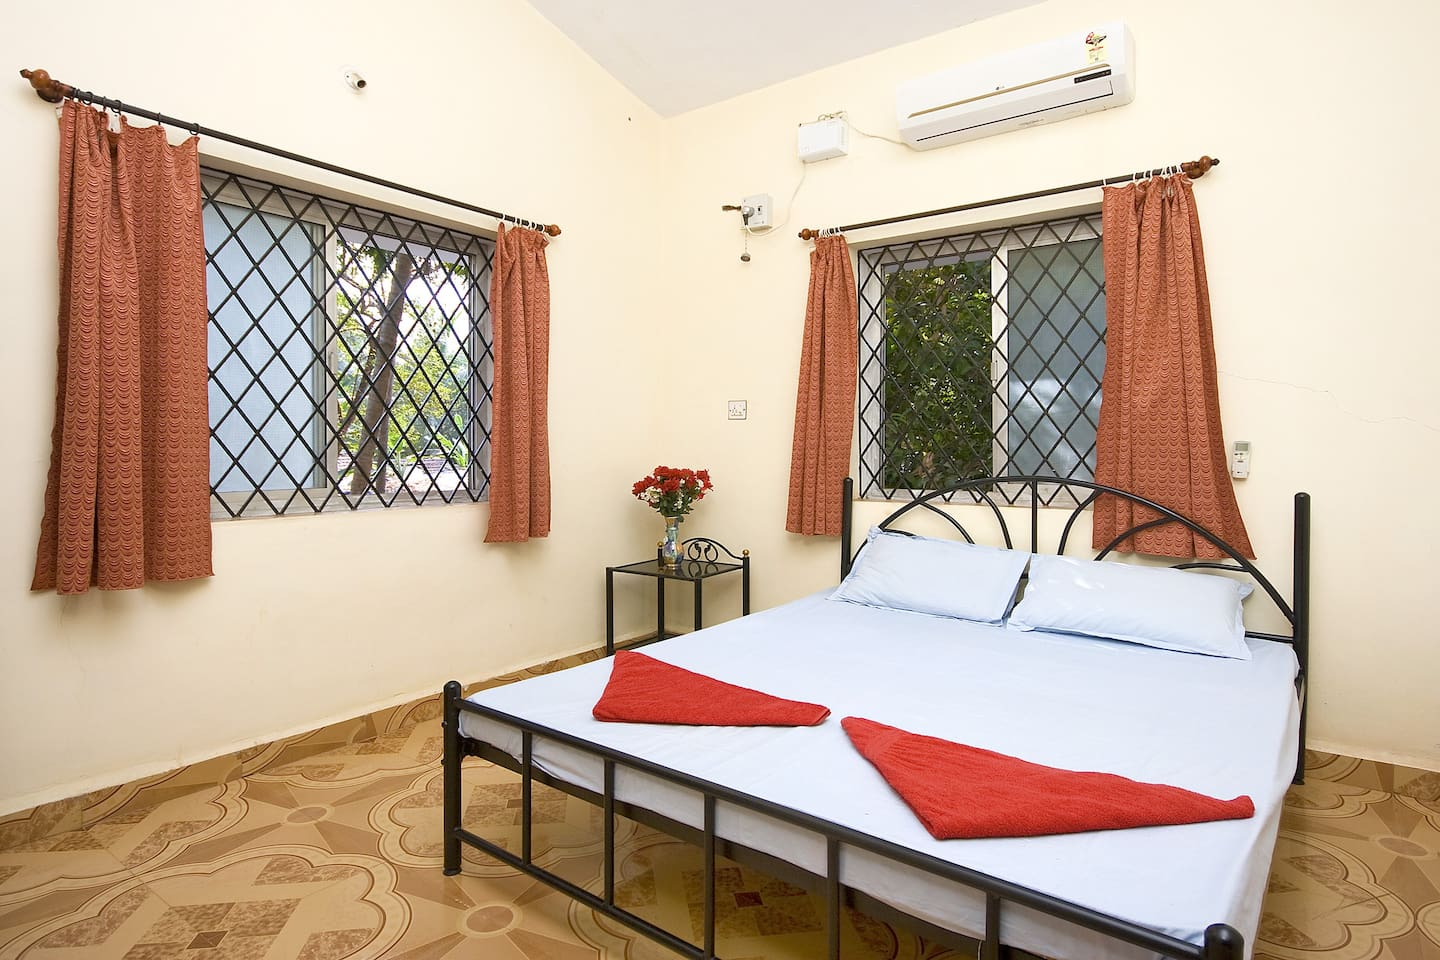 AC bedroom1 with double bed